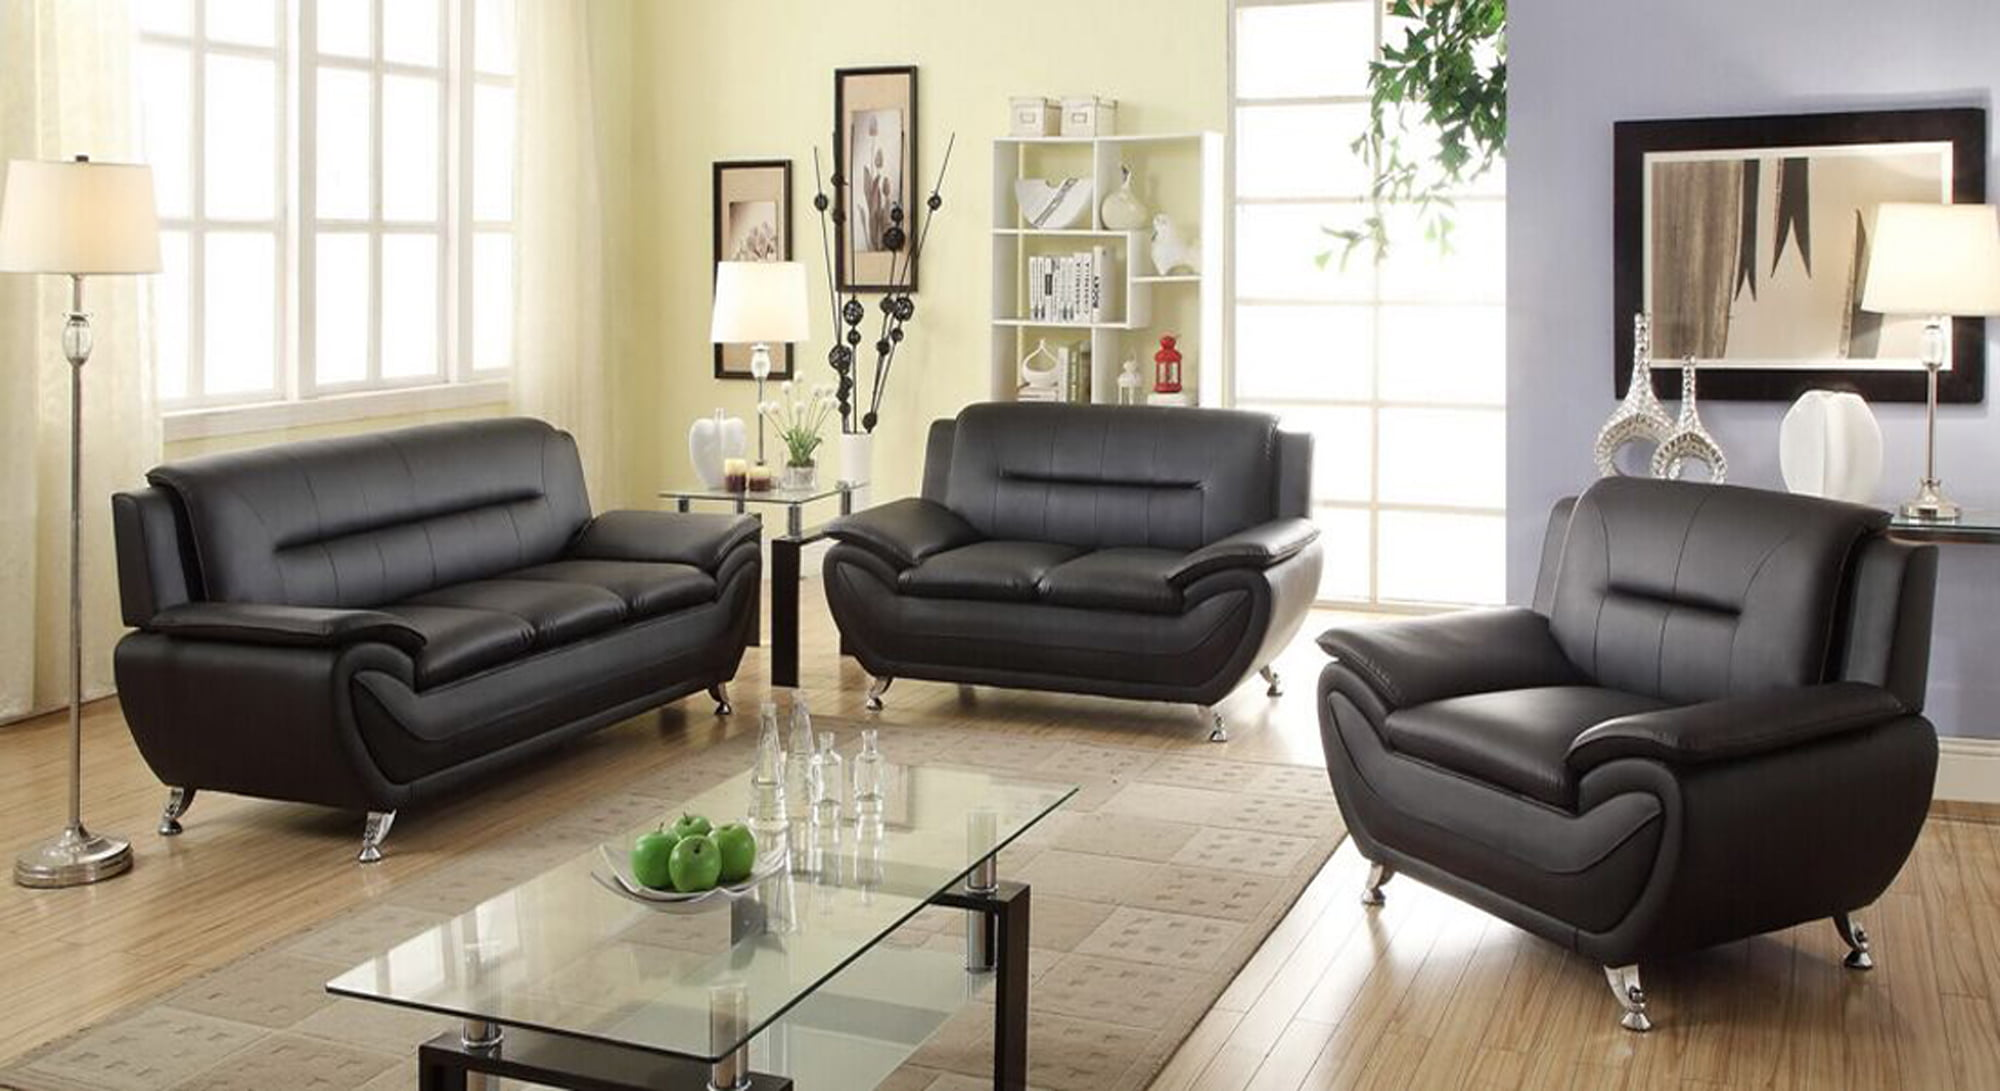 Norton 3 pc Black Faux Leather Modern Living Room Sofa set - Walmart.com